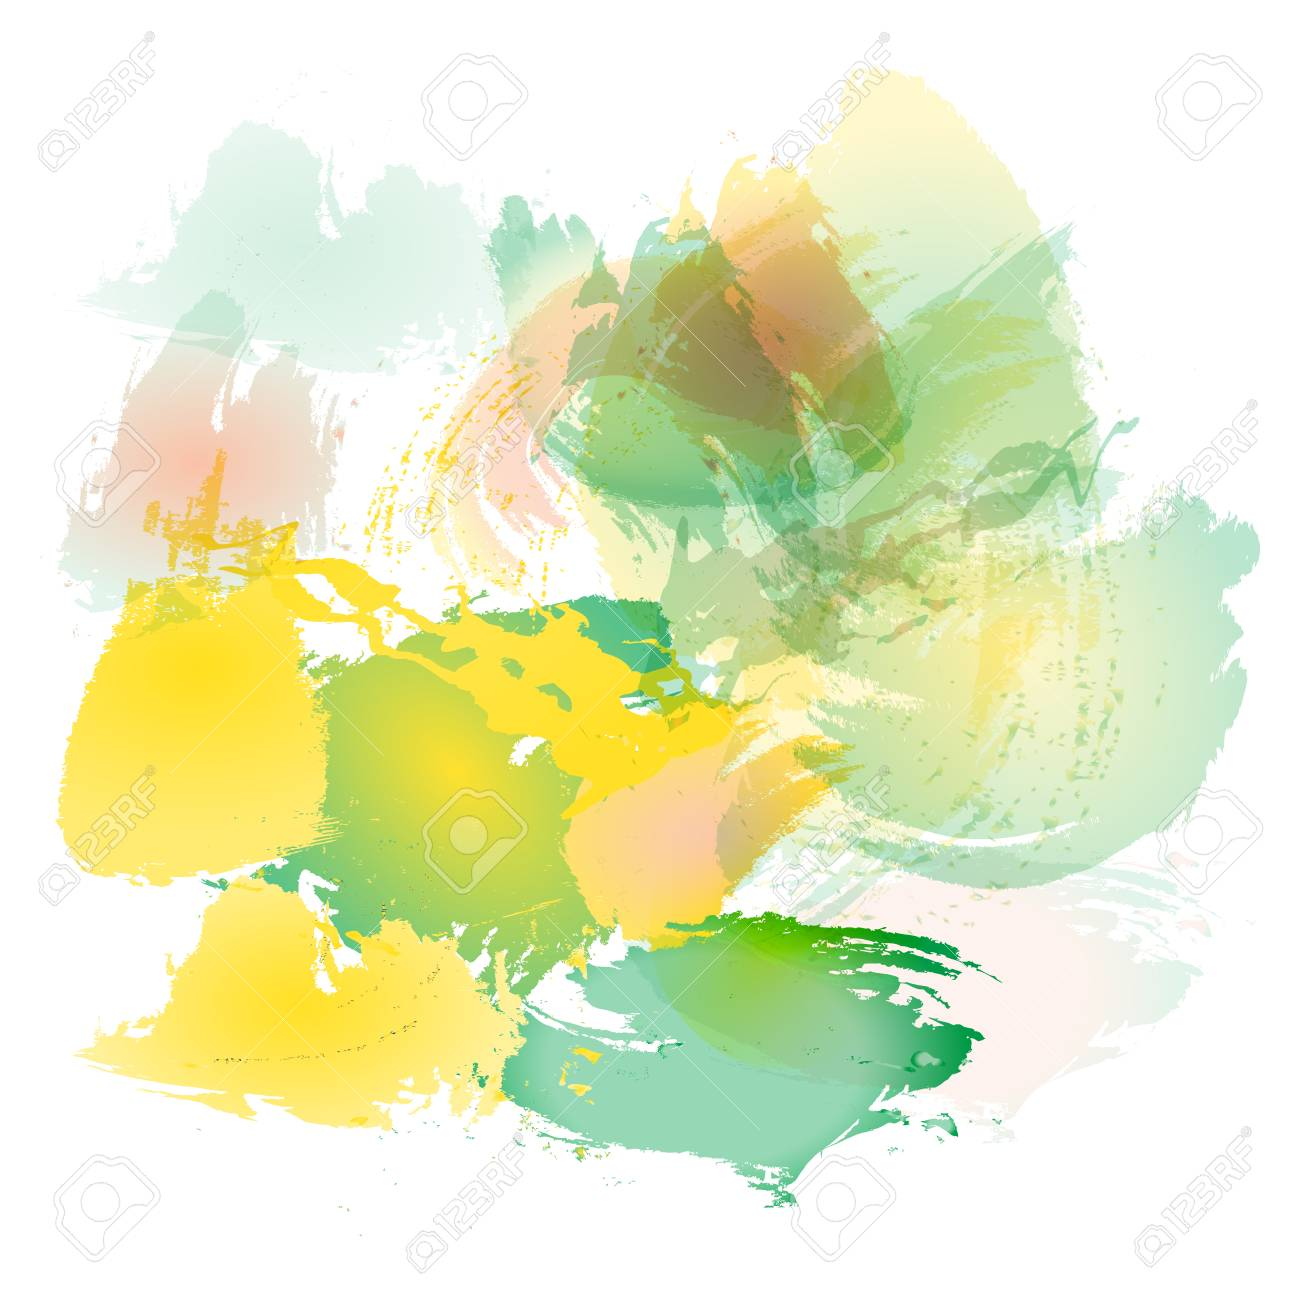 Imitation Of Strokes With A Watercolor Brush Of Red, Yellow And ...